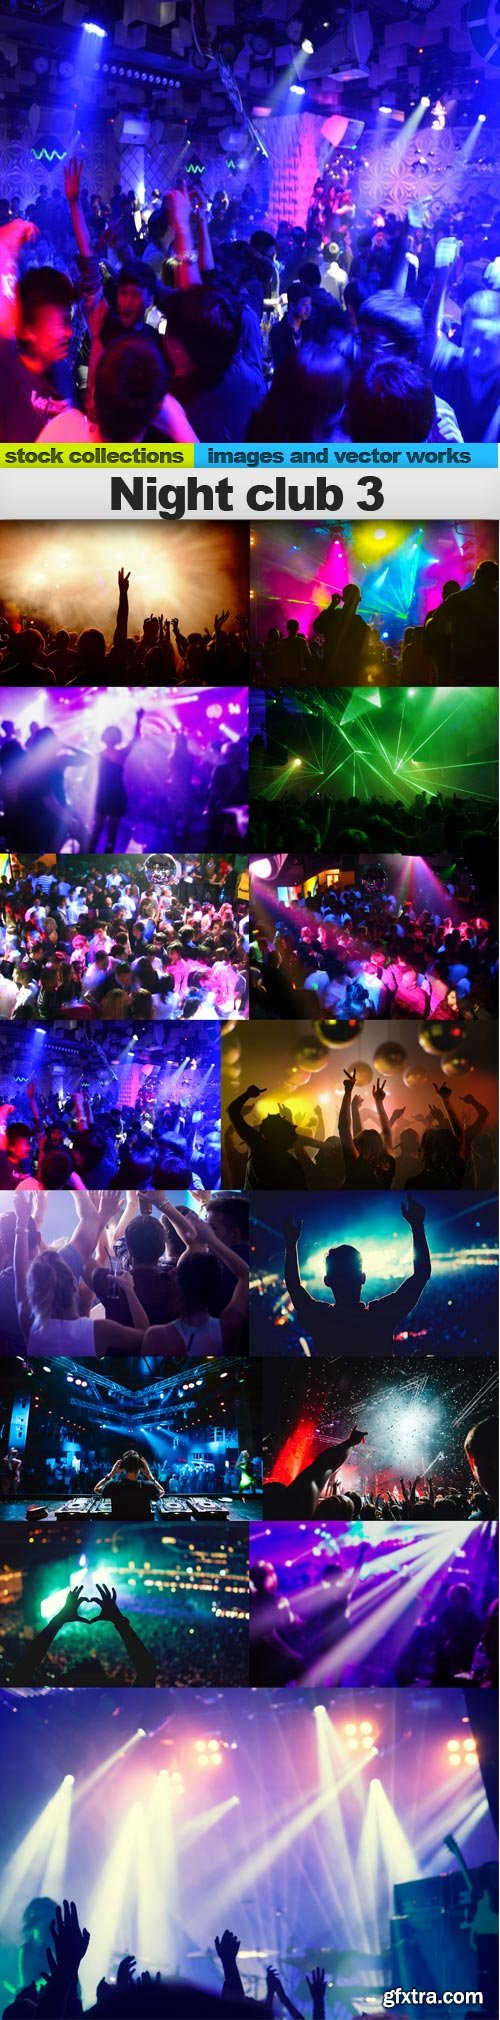 Night club 3, 15 x UHQ JPEG